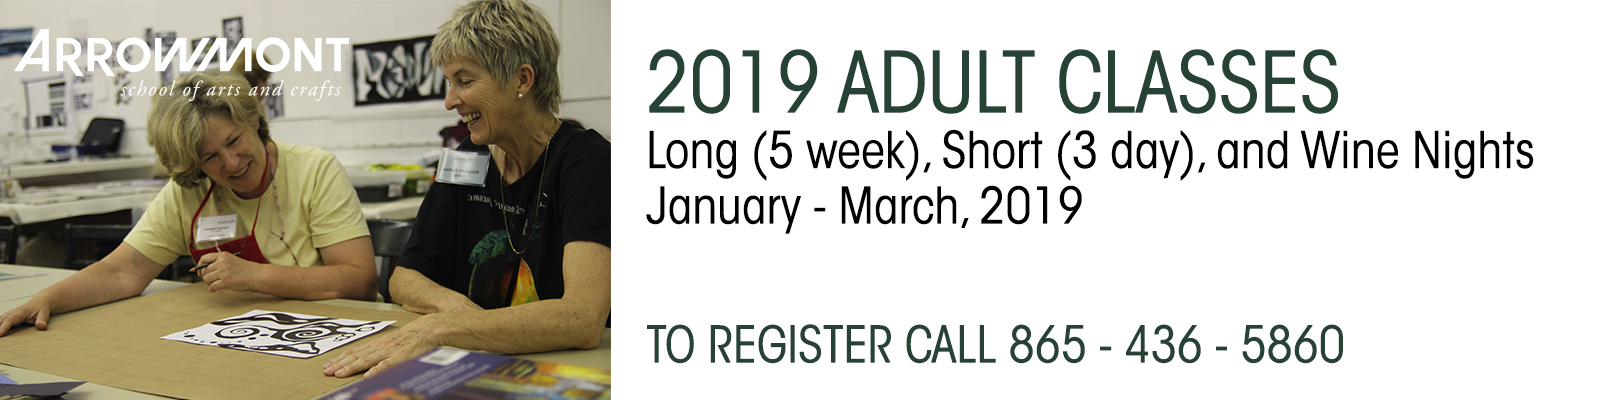 2019 Adults Classes - Arrowmont School of Arts and Crafts